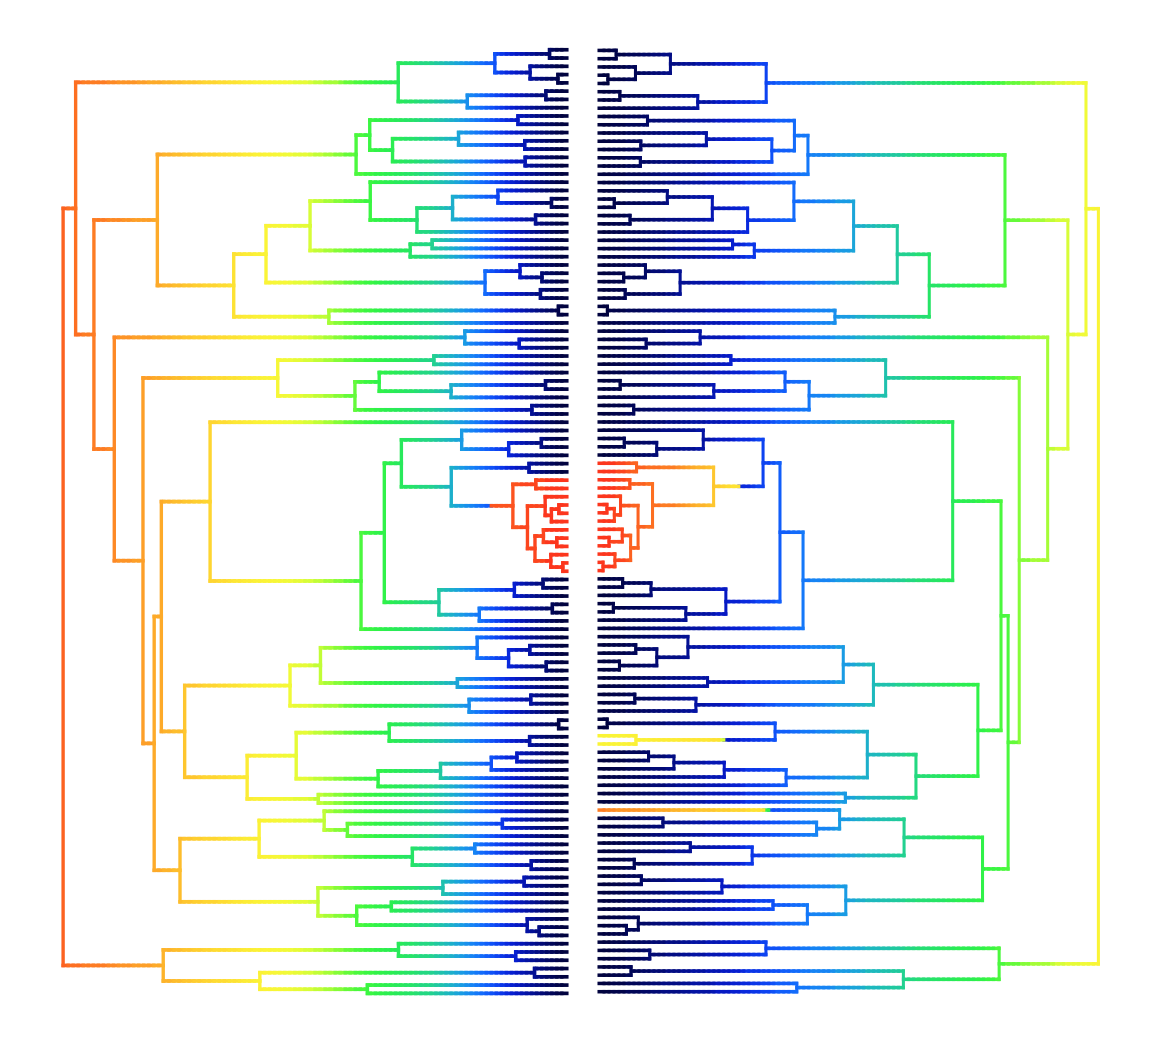 Phylogeny where warmer colors represent faster rates with speciation on the left and trait diversification on the right. Image courtesy of S. Price